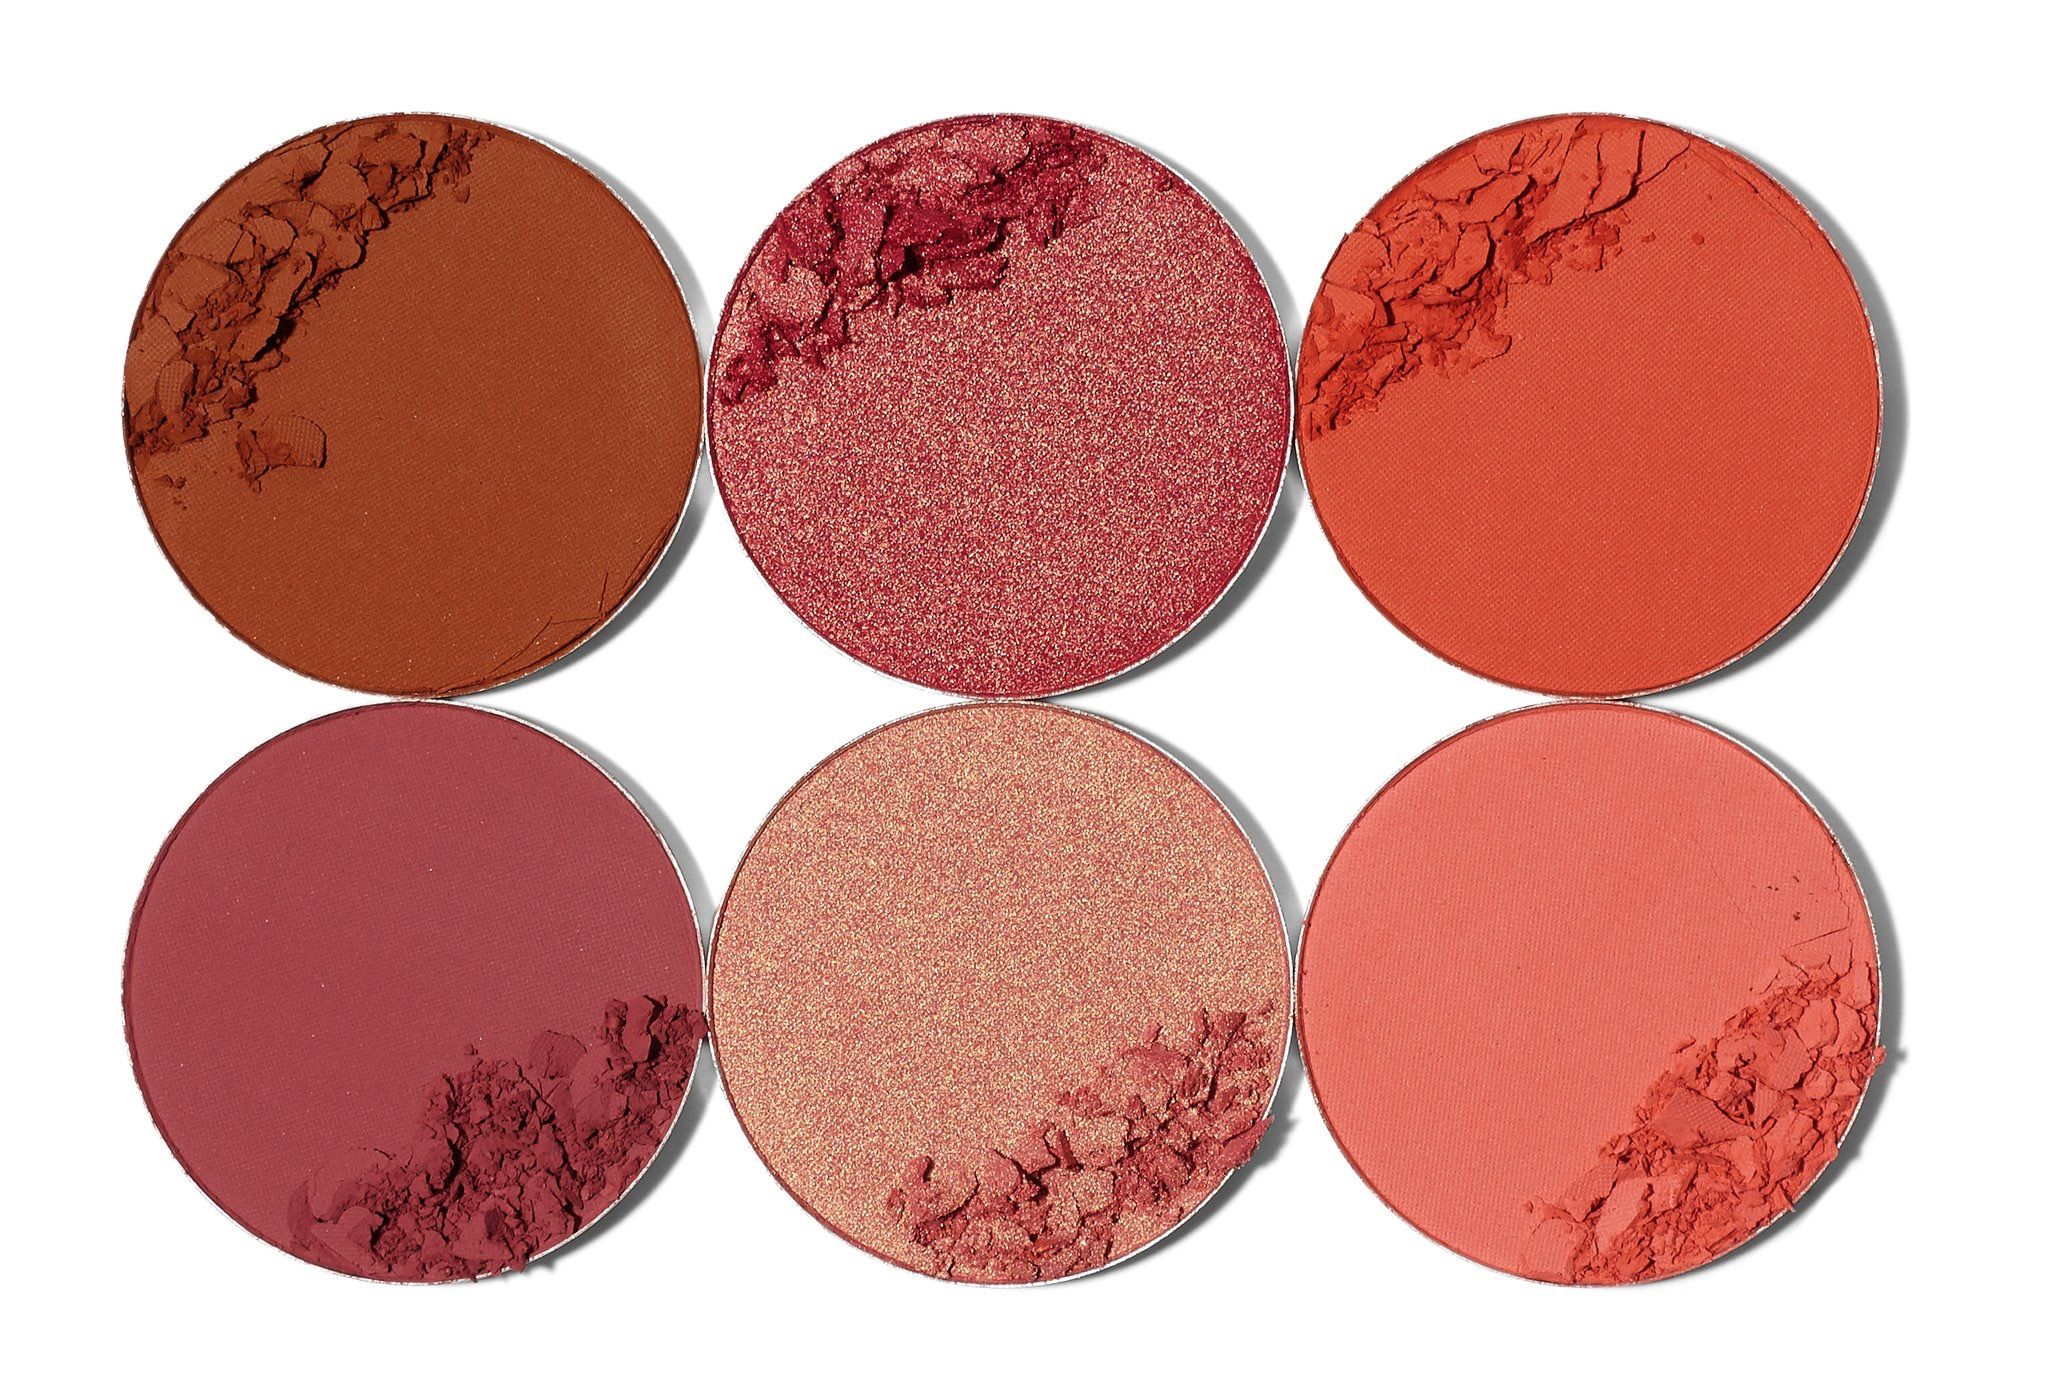 Pin by Aimee Rogers on Eyes Blush palette, Blush, Makeup